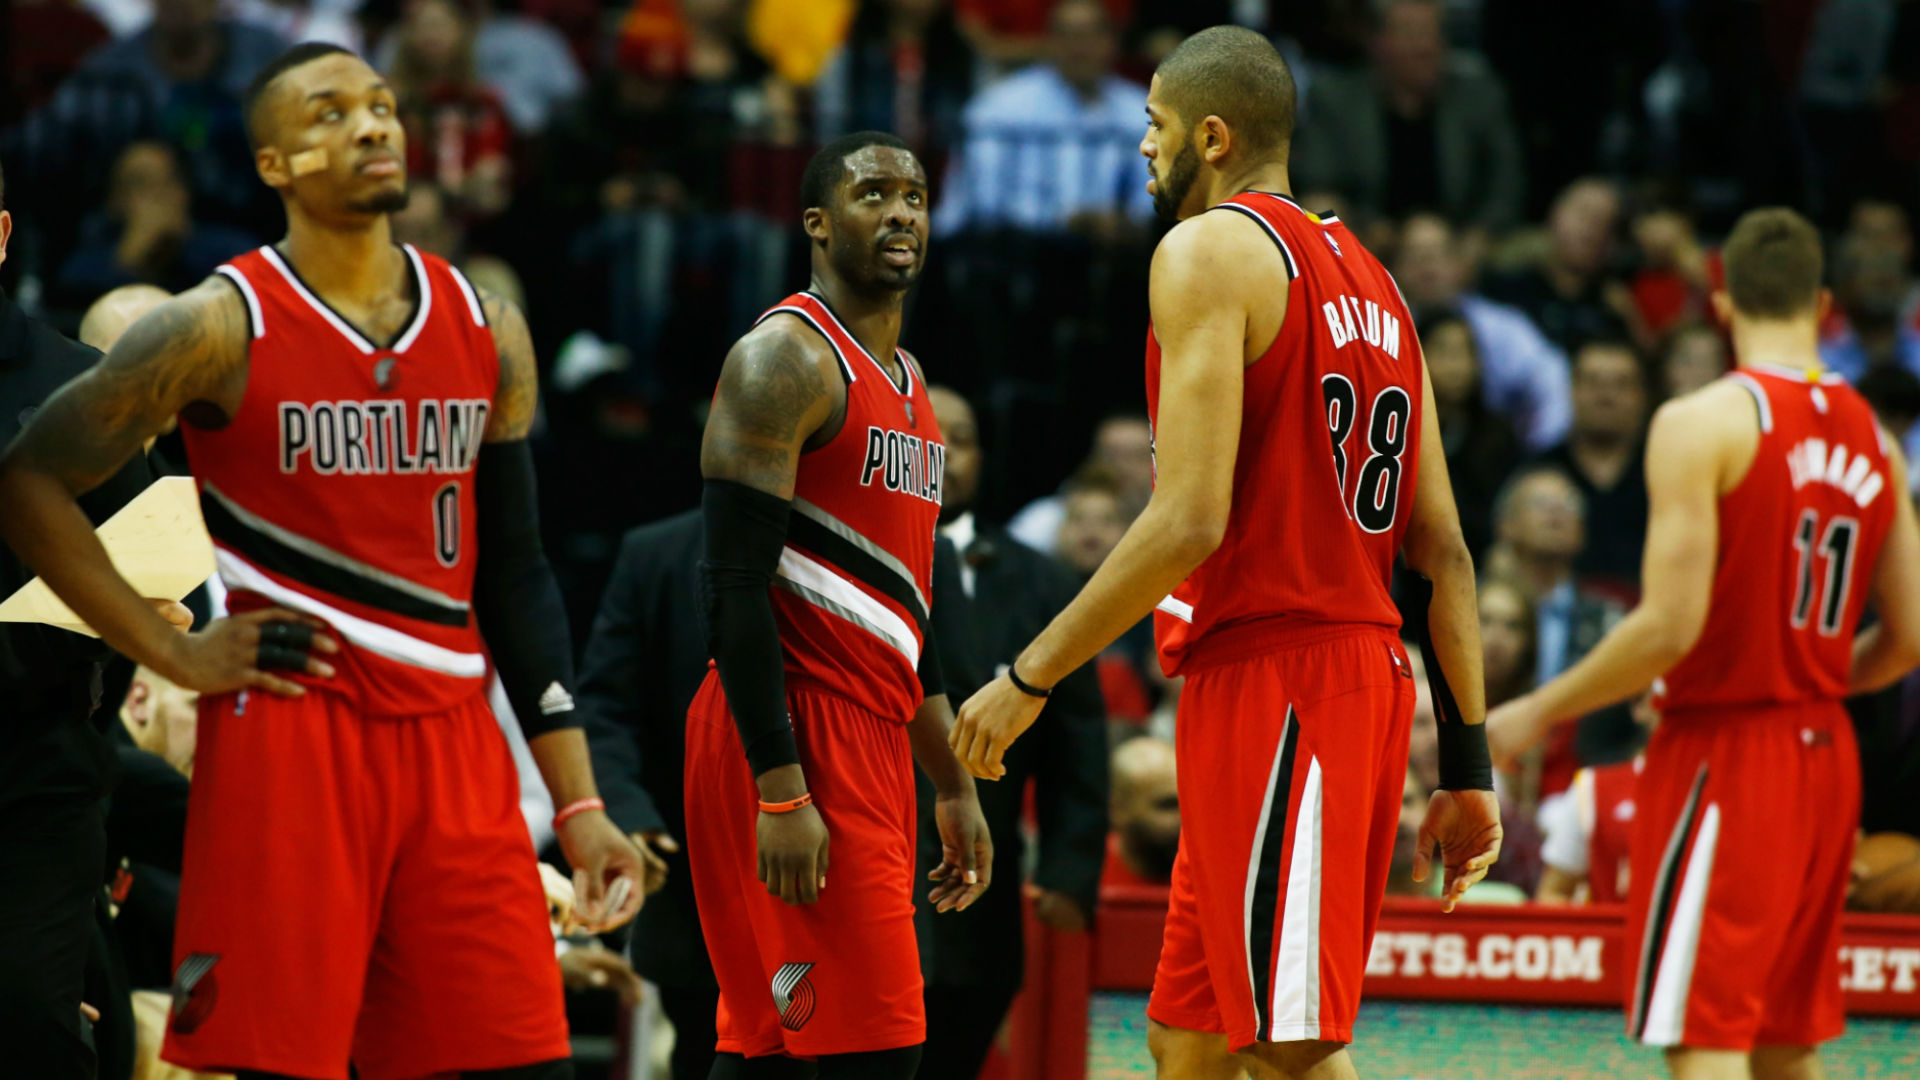 Trail Blazers post 'We don't lose to Spanish players' in locker room